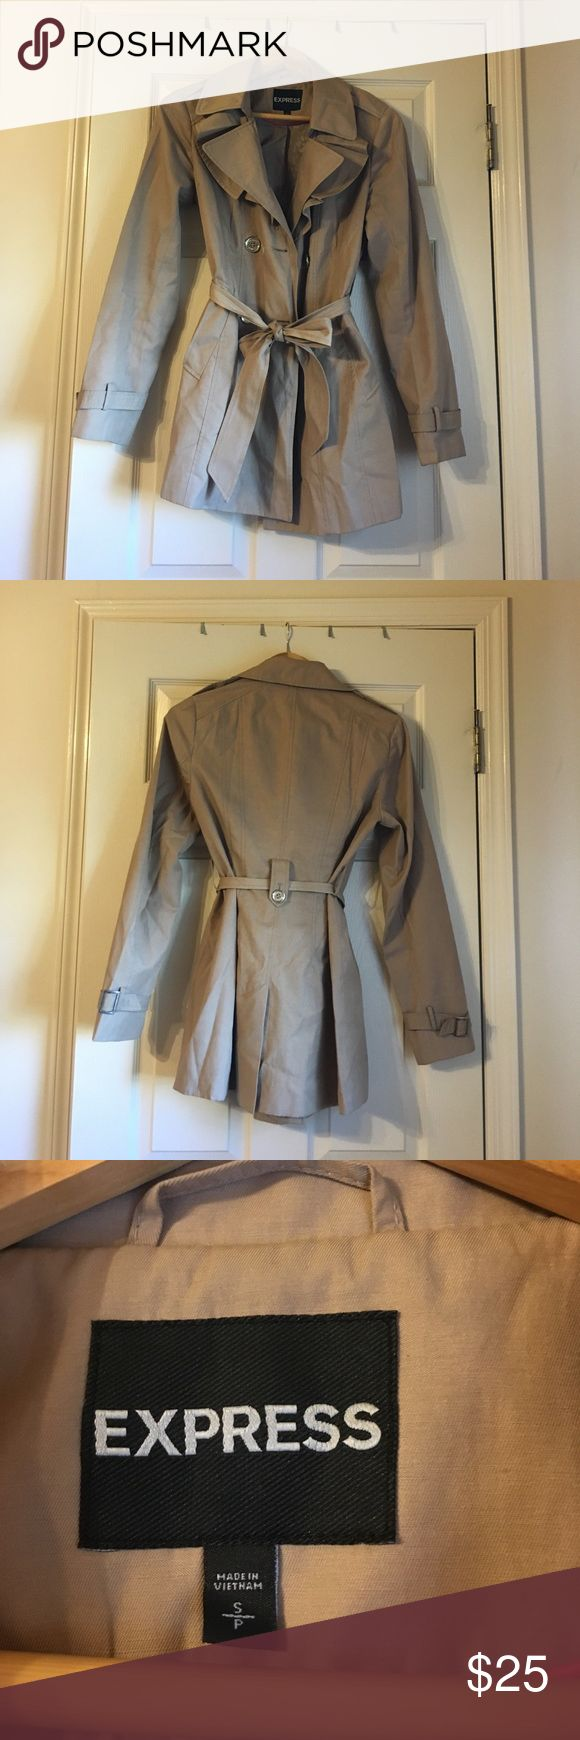 Express Beige Trench/ Rain Coat Express rain coat with pockets and tie to go with it Express Jackets & Coats Trench Coats